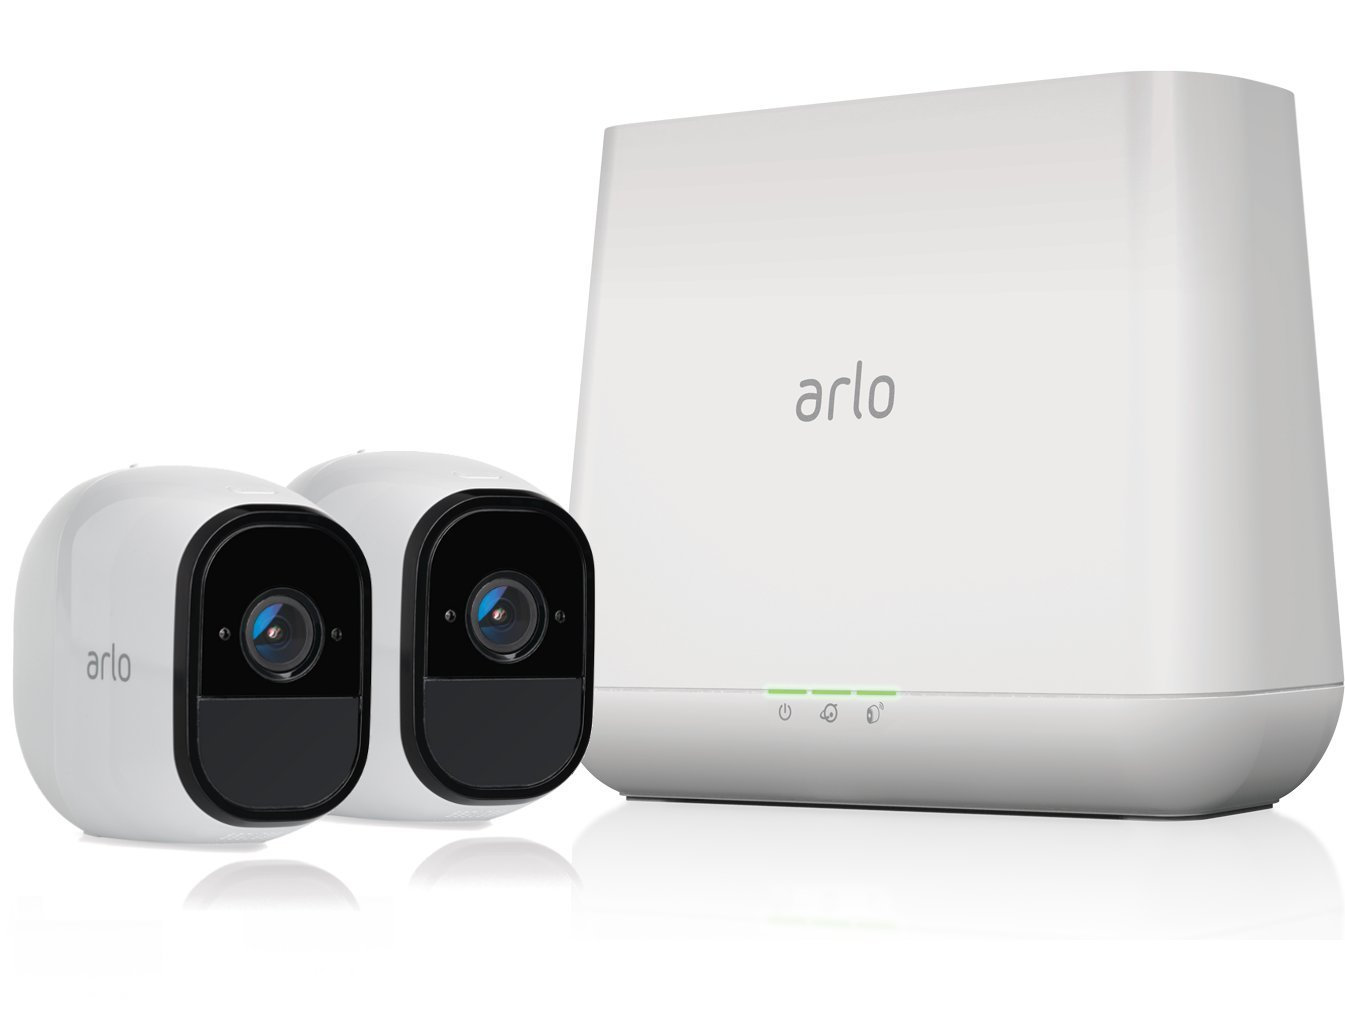 Arlo Pro - Wireless Home Security Camera System with Siren | Rechargeable, Night vision, Indoor/Outdoor, HD Video, 2-Way Audio, Wall Mount | Cloud Storage Included | 2 camera kit (VMS4230) by Arlo Technologies, Inc